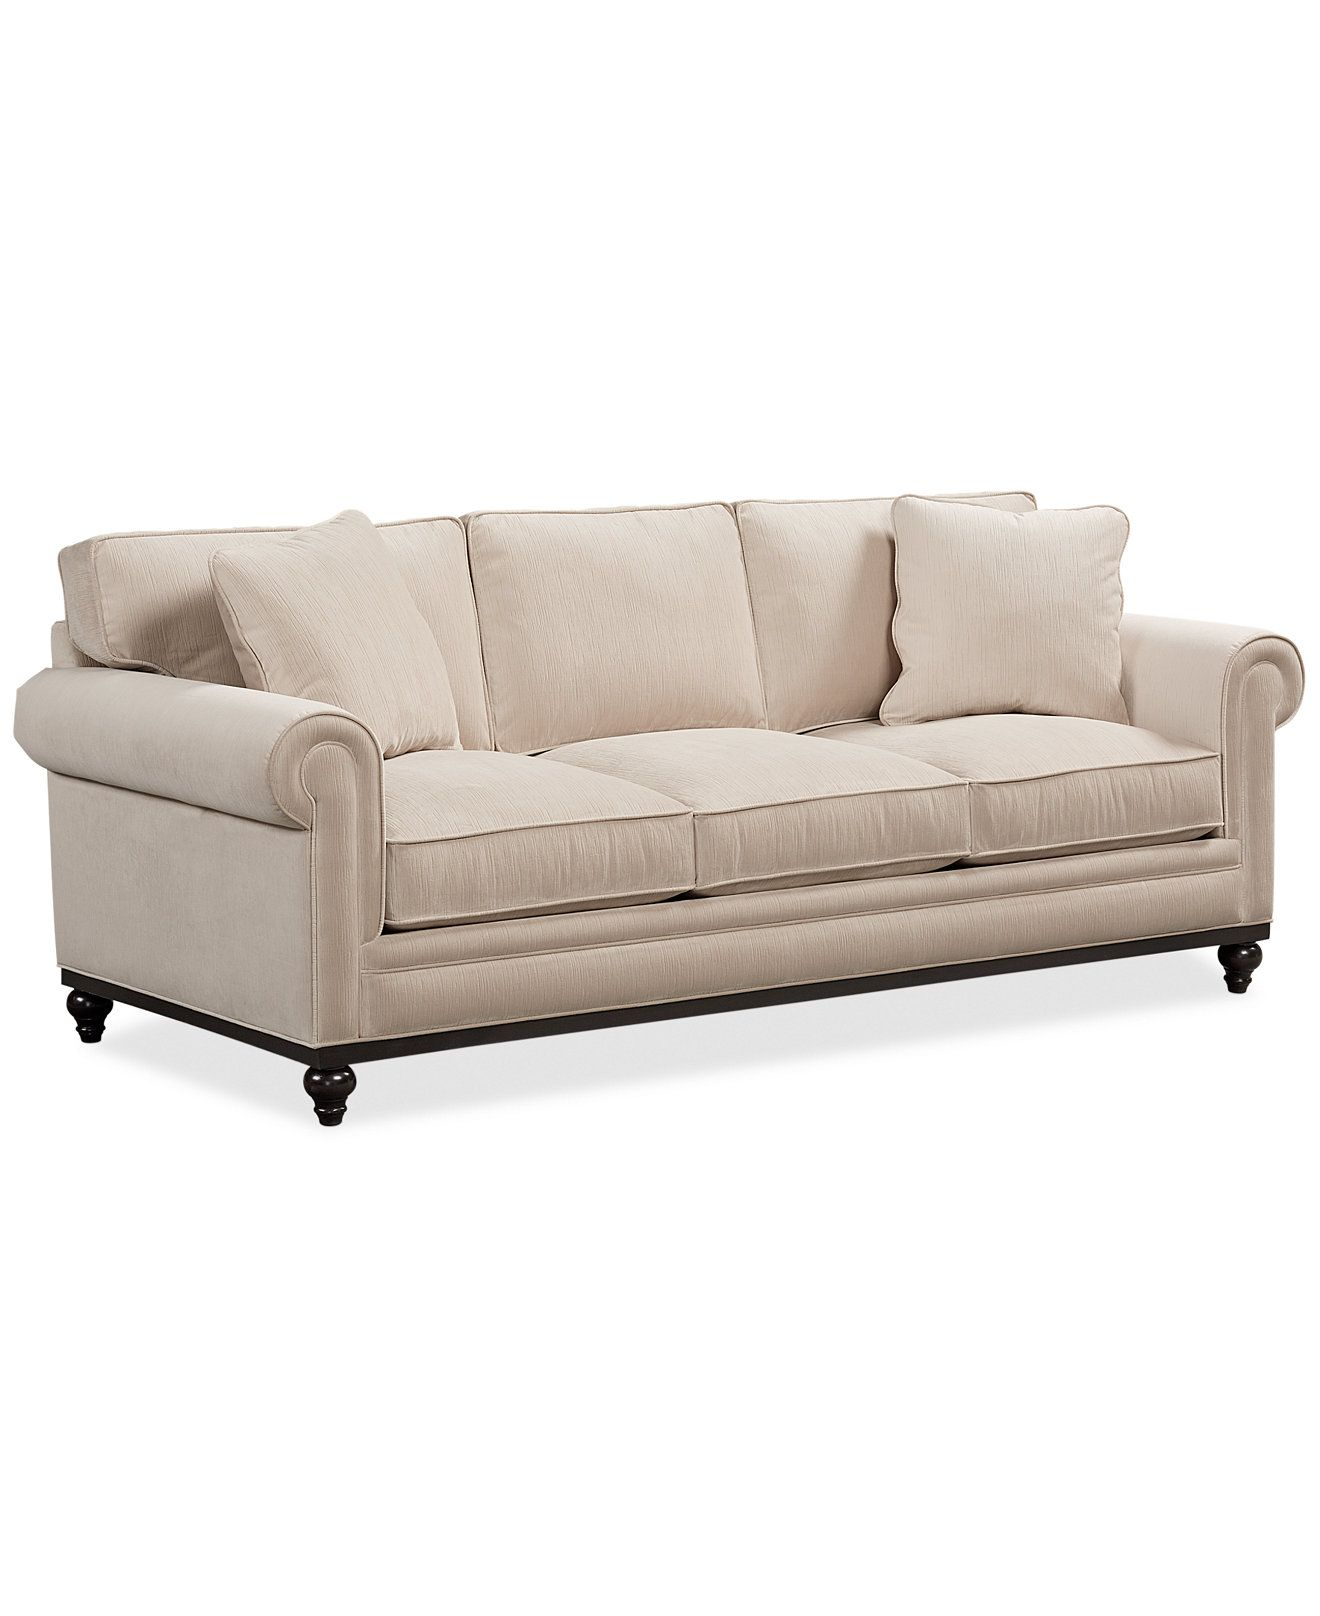 cool Kenton Fabric Sofa Lovely Kenton Fabric Sofa 41 In fice